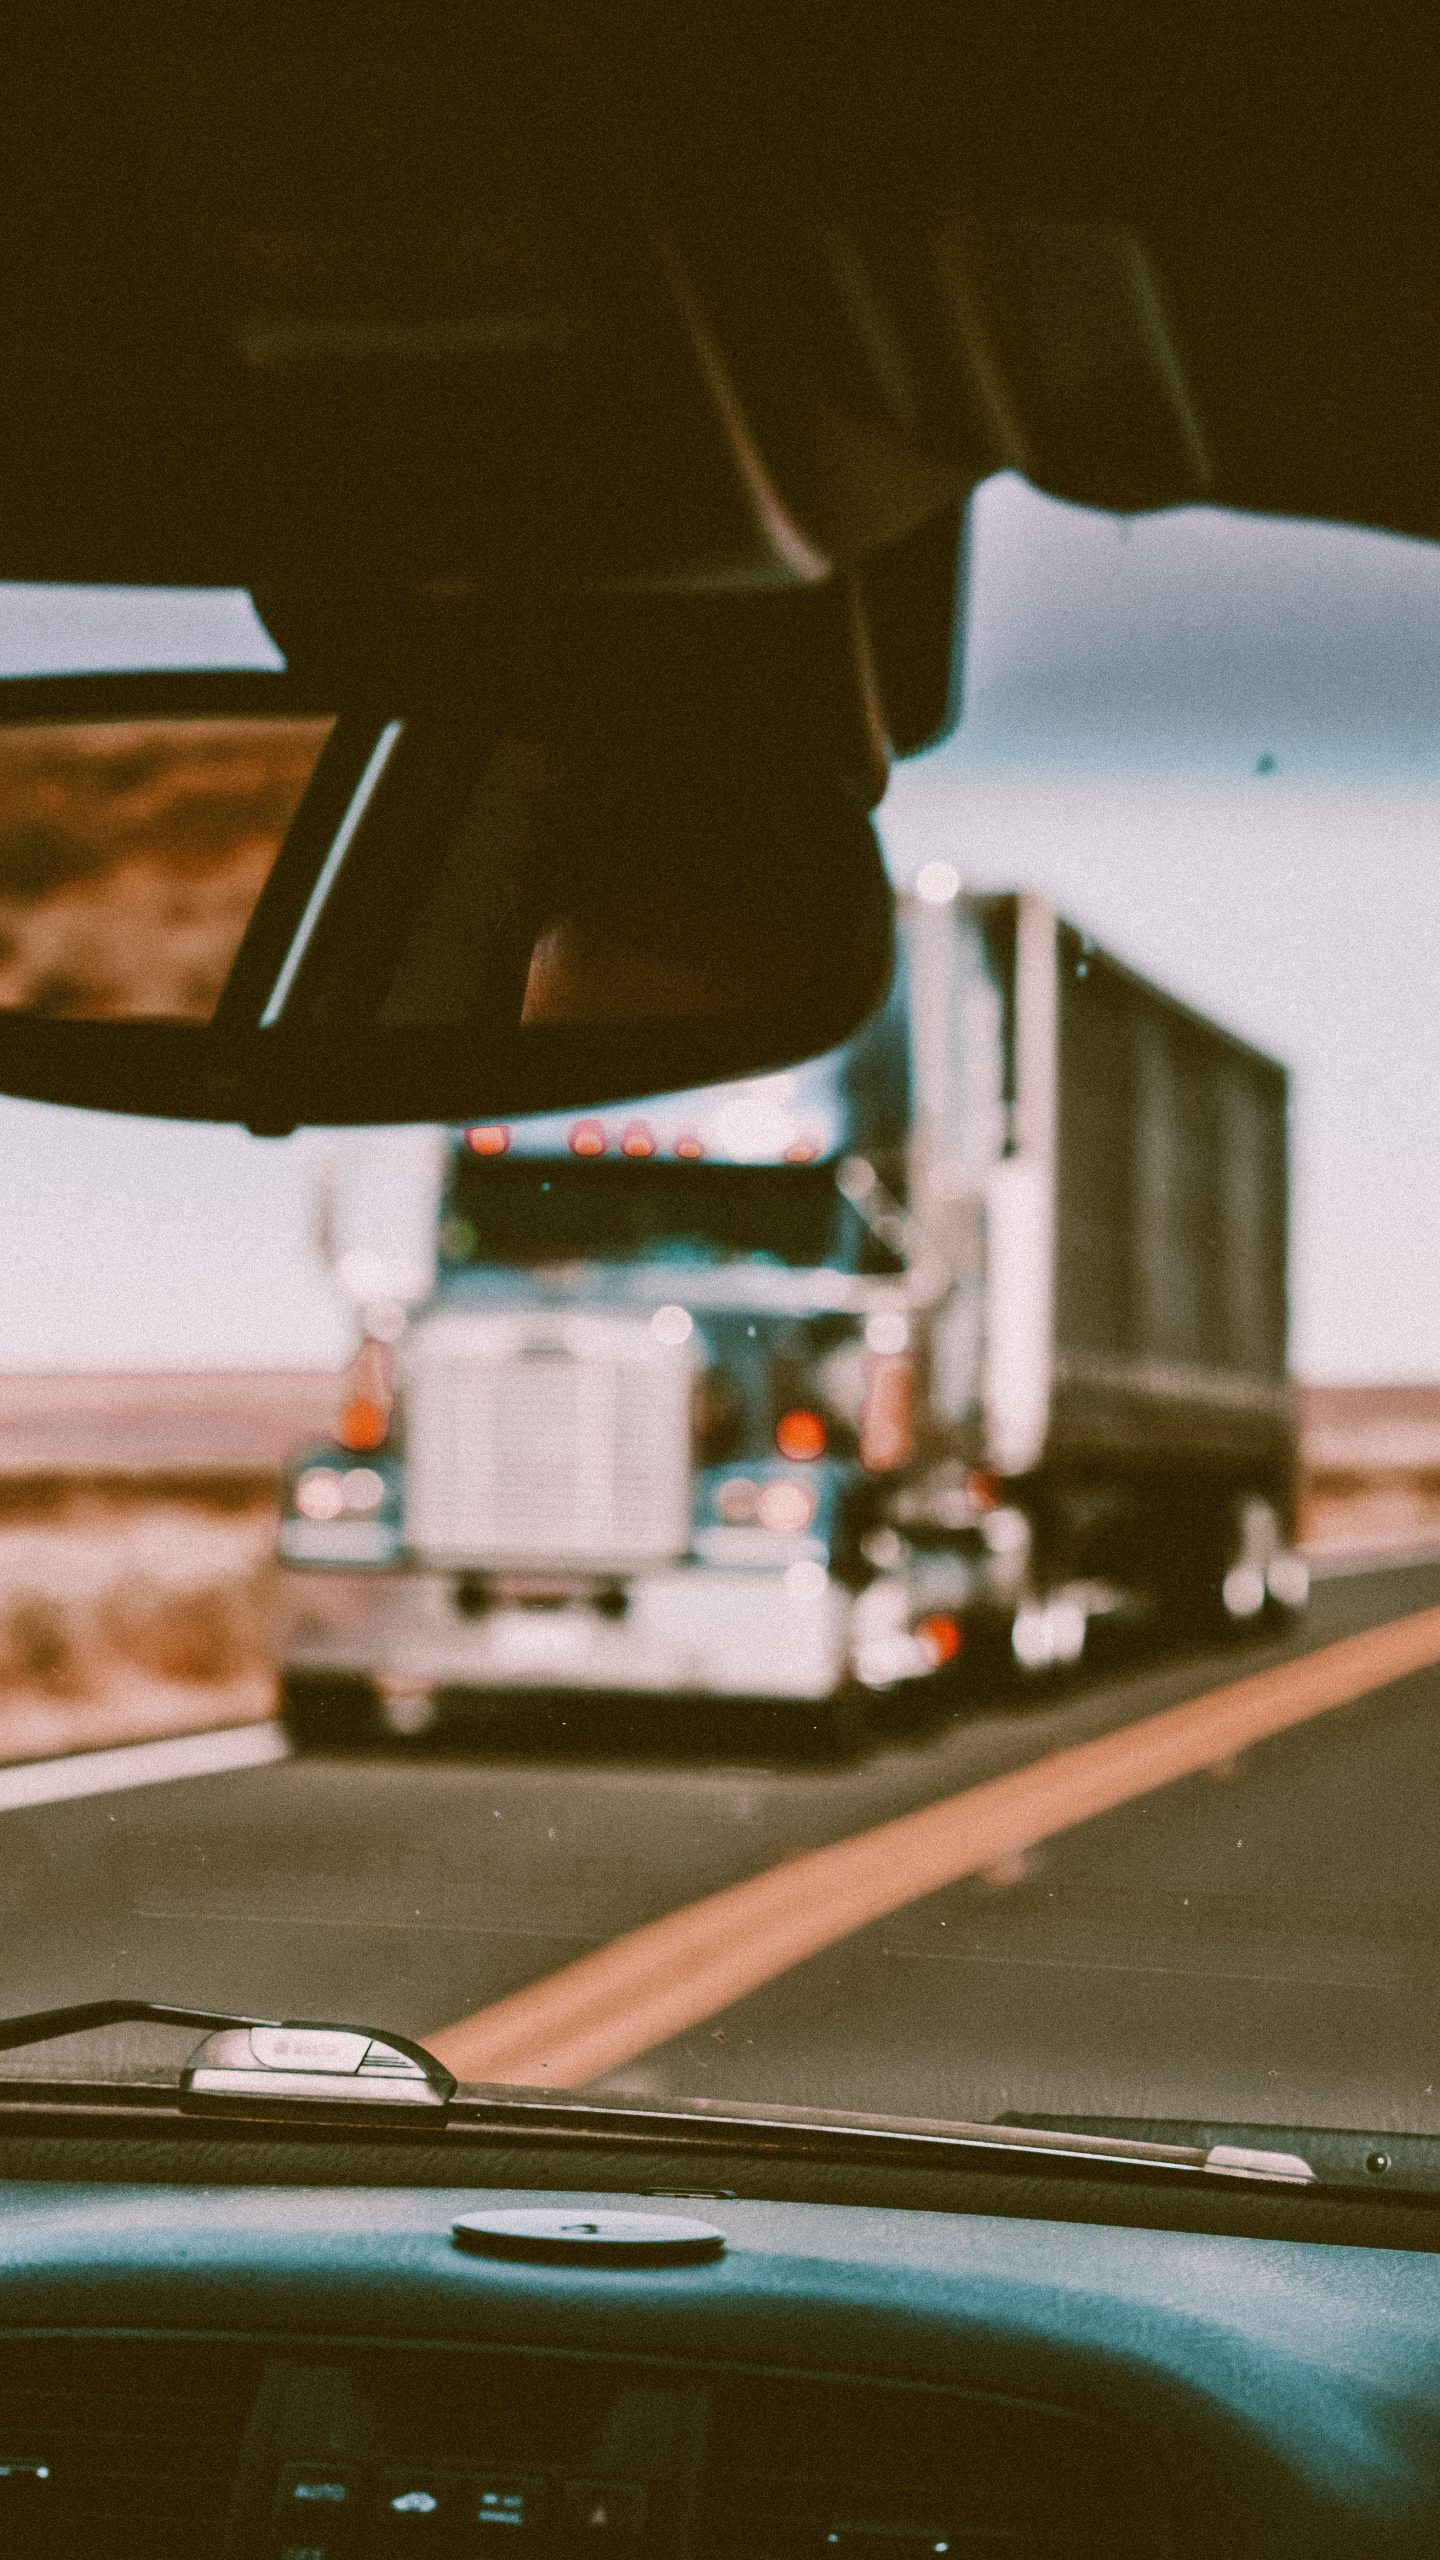 blurry image of truck through another truck window